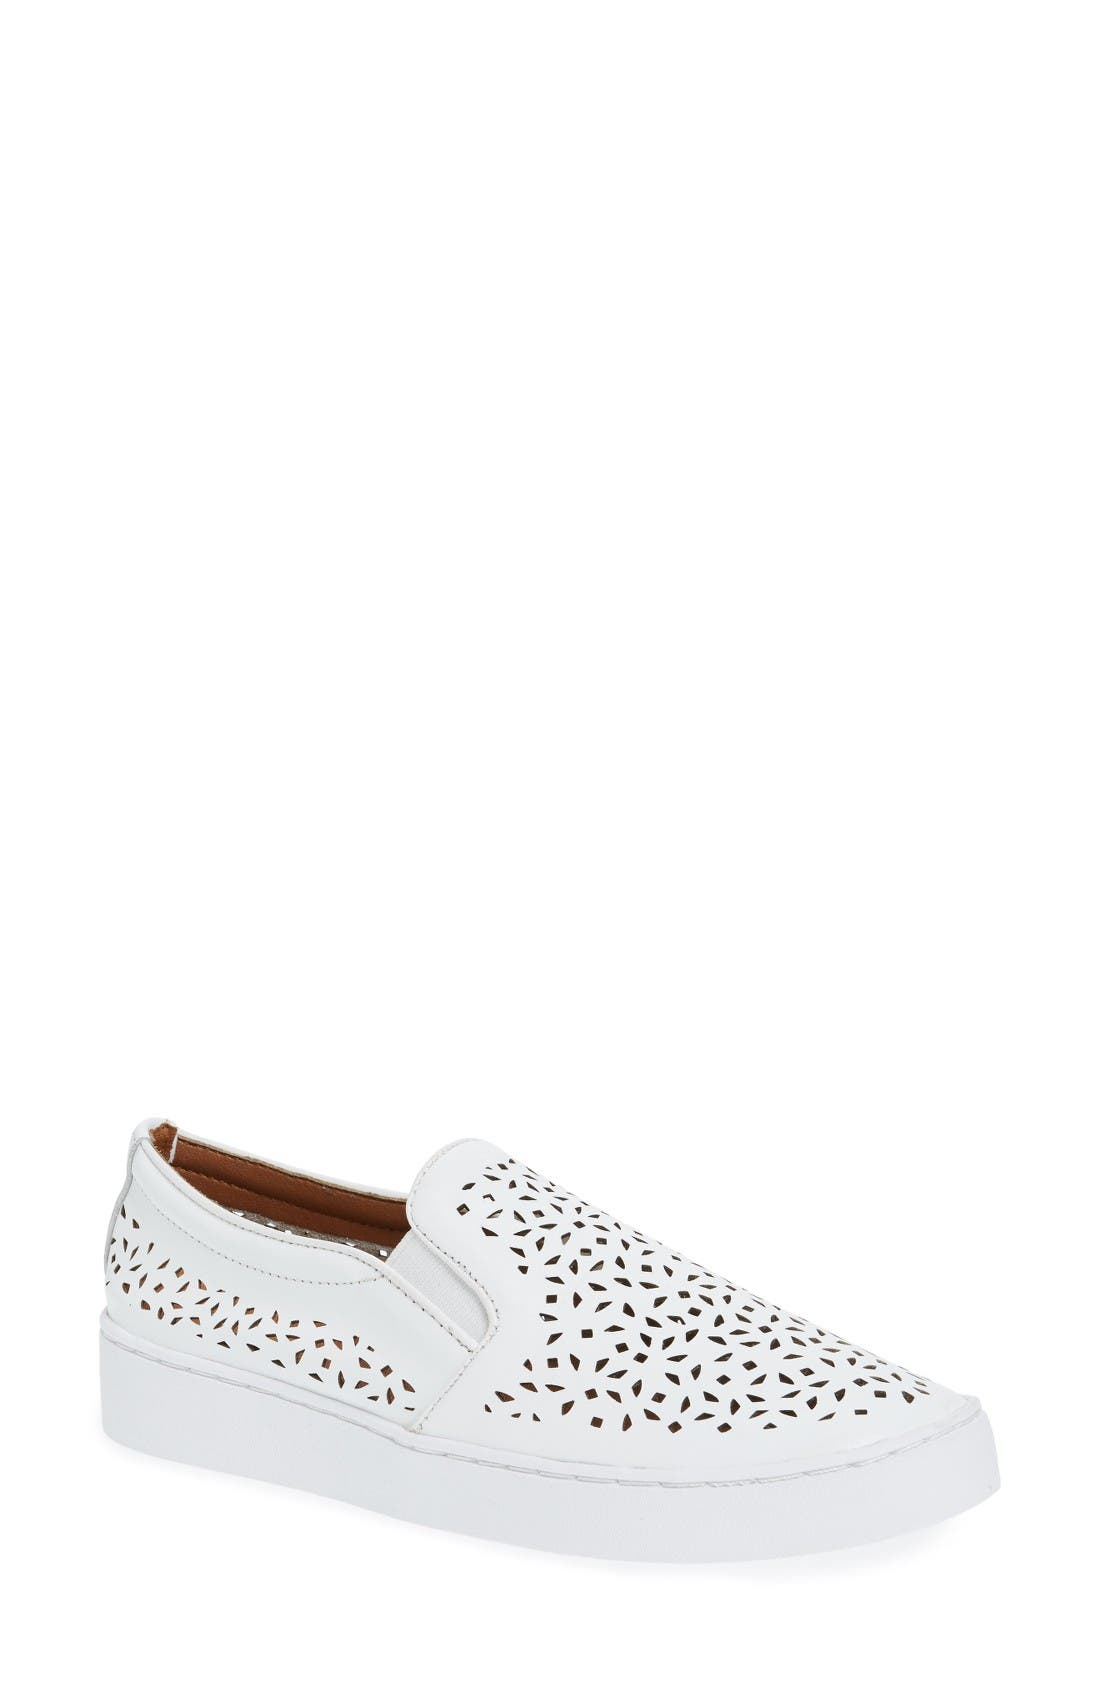 Vionic Perforated Slip-On Sneaker (Women)